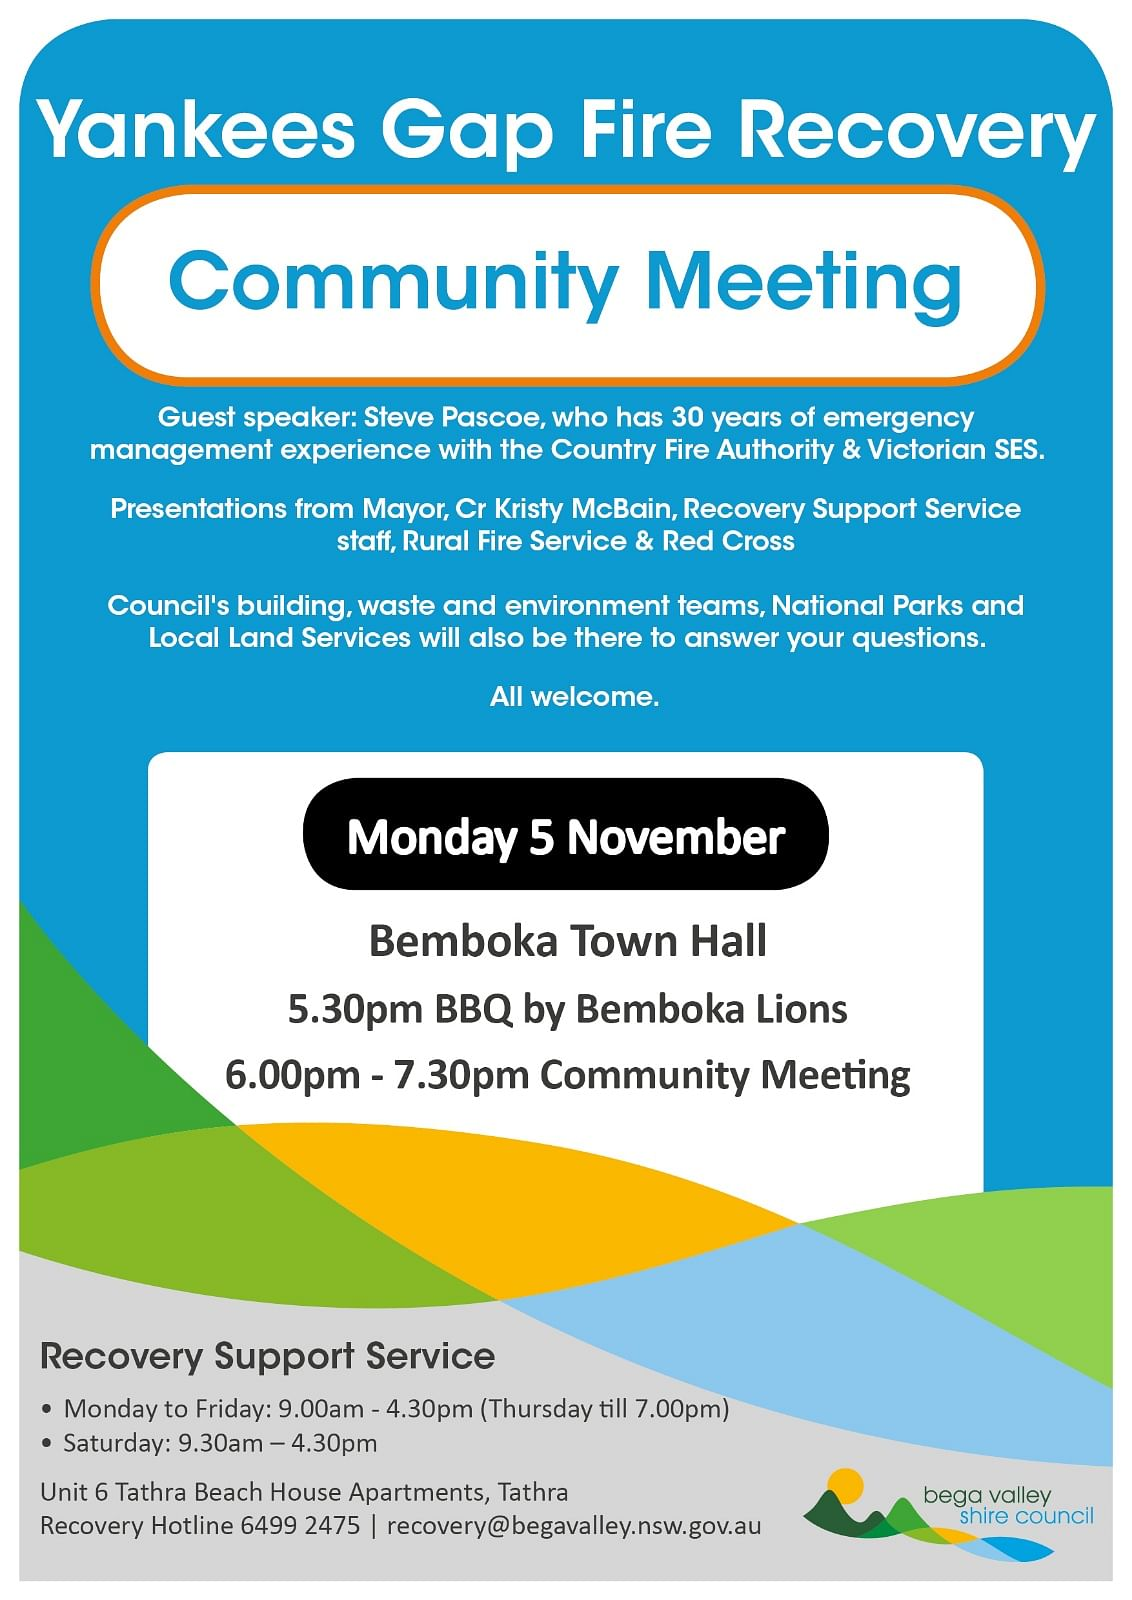 poster promoting public meeting in Bemboka on Monday 5 November 2018 for residents affected by Yankees Gap fire.